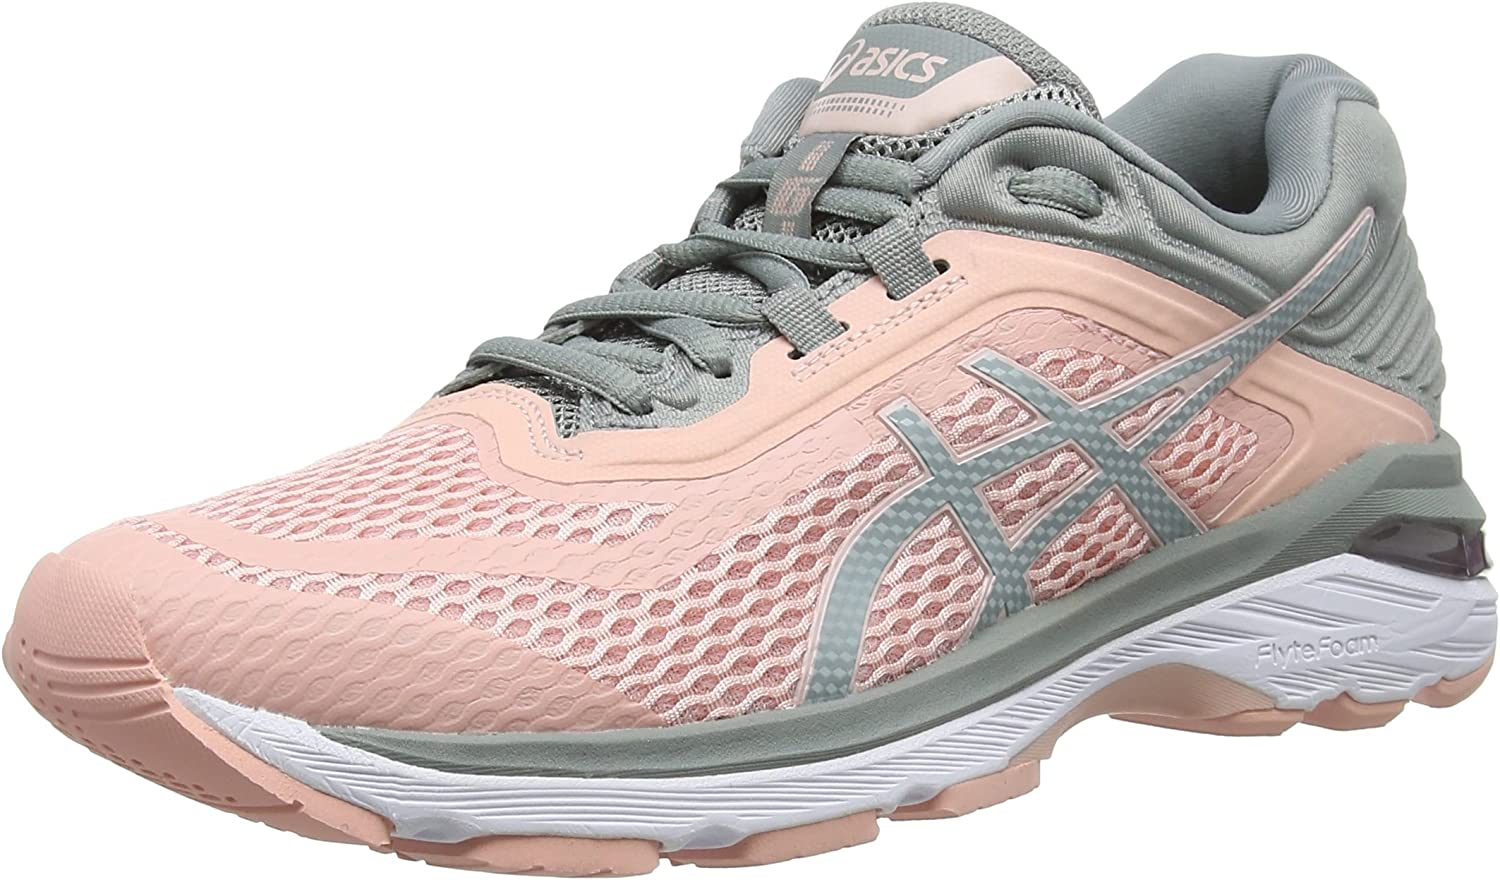 ASICS GT 2000 6 Womens Running Shoes - Pink-5: Amazon.ca ...